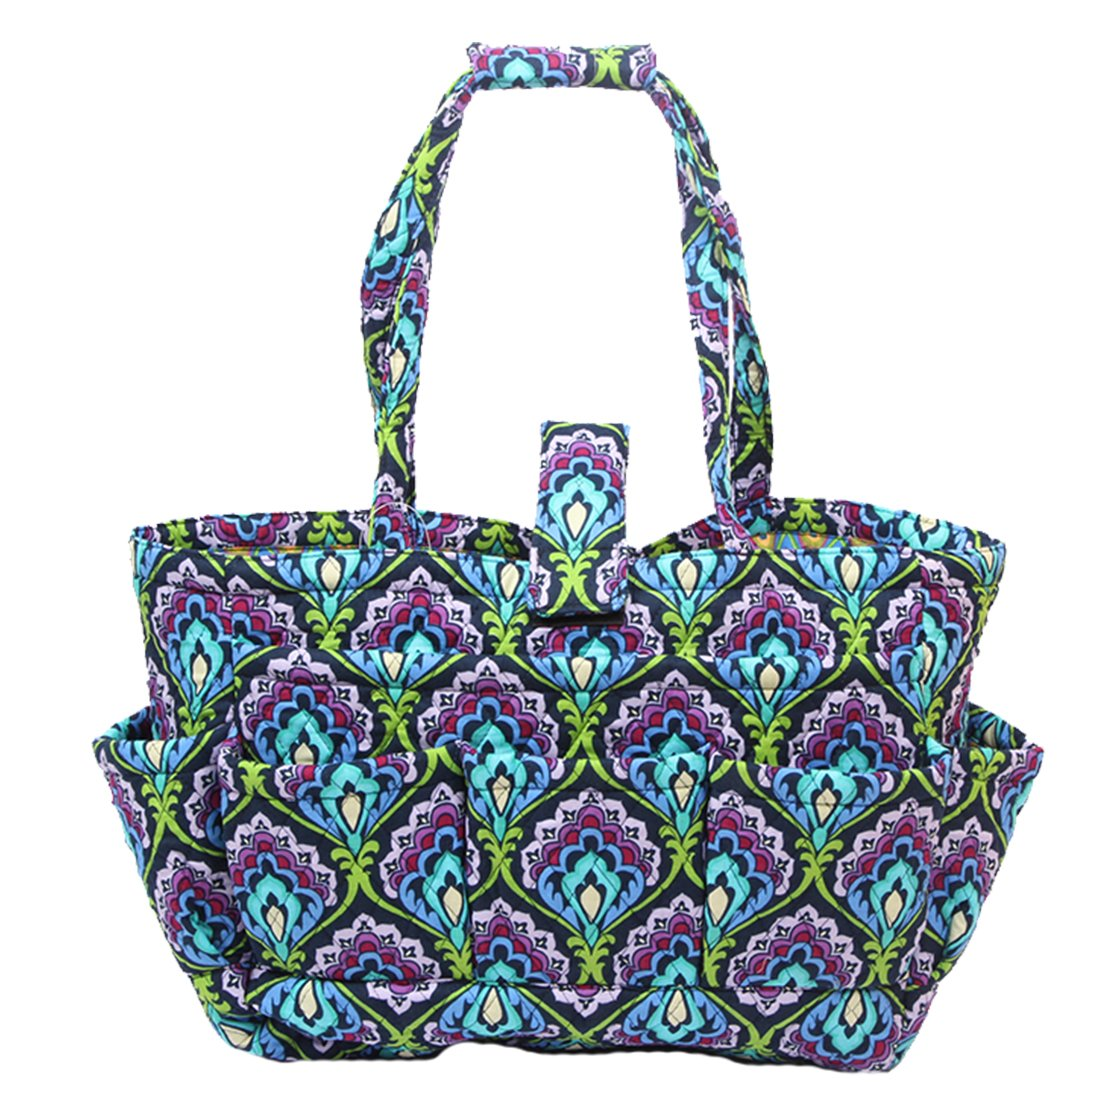 FLloral Quilted Cotton Needle Bag Knitting Bag Yarn